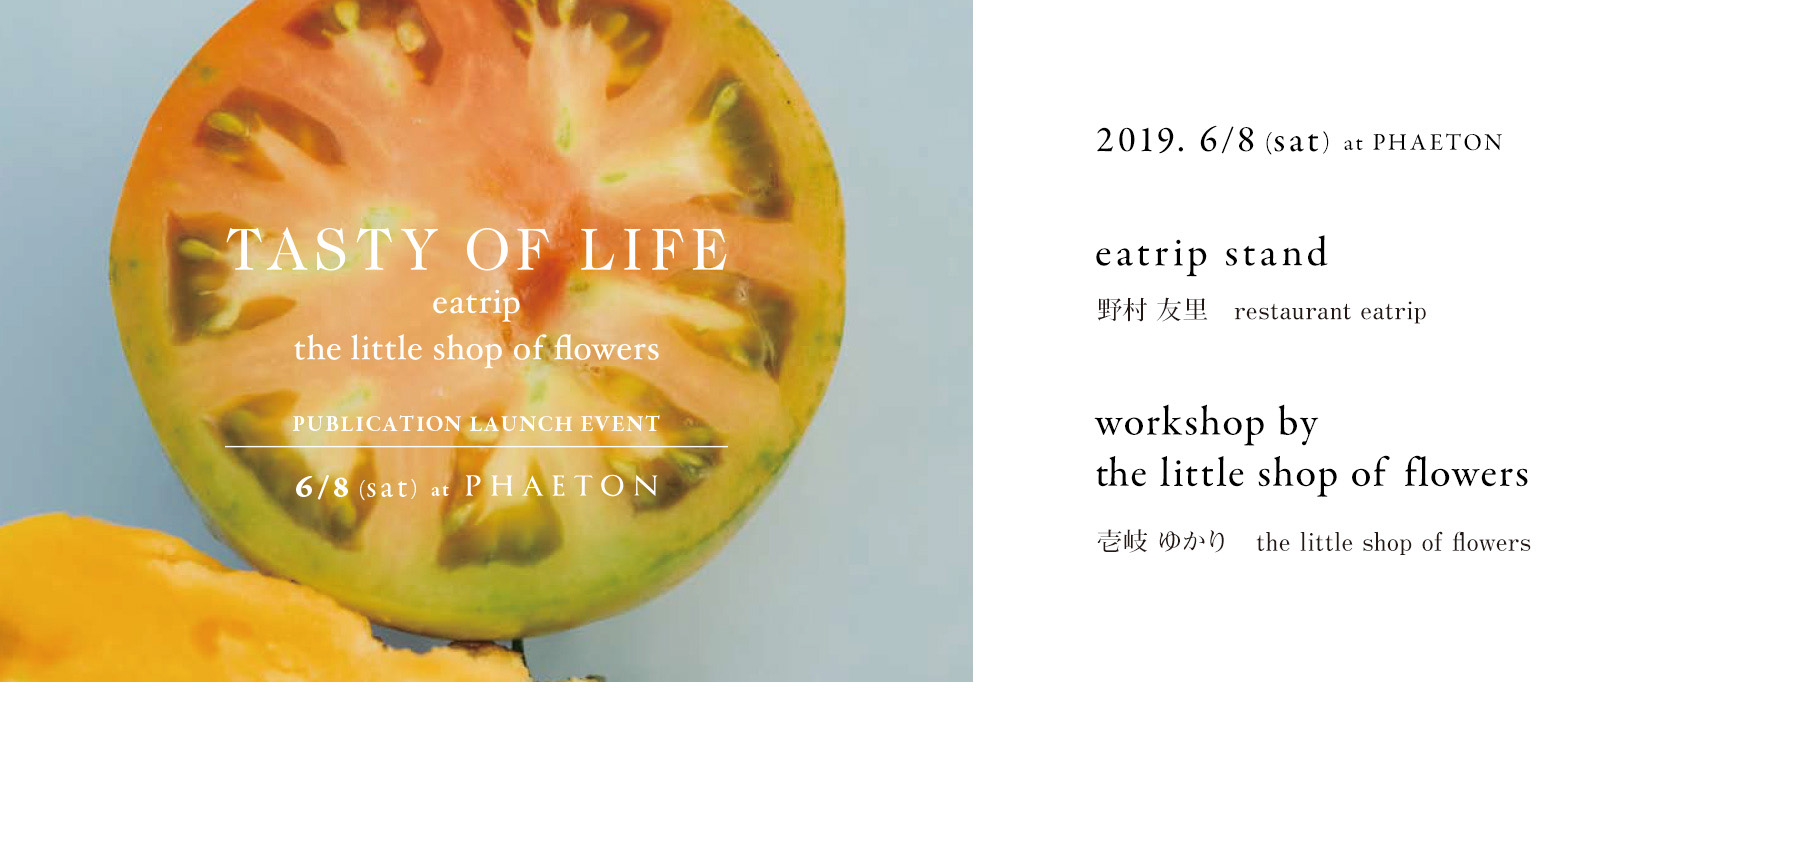 2019.6/8 sat|TASTY OF LIFE eatrip / the little shop of flowers 刊行記念イベント at PHAETON